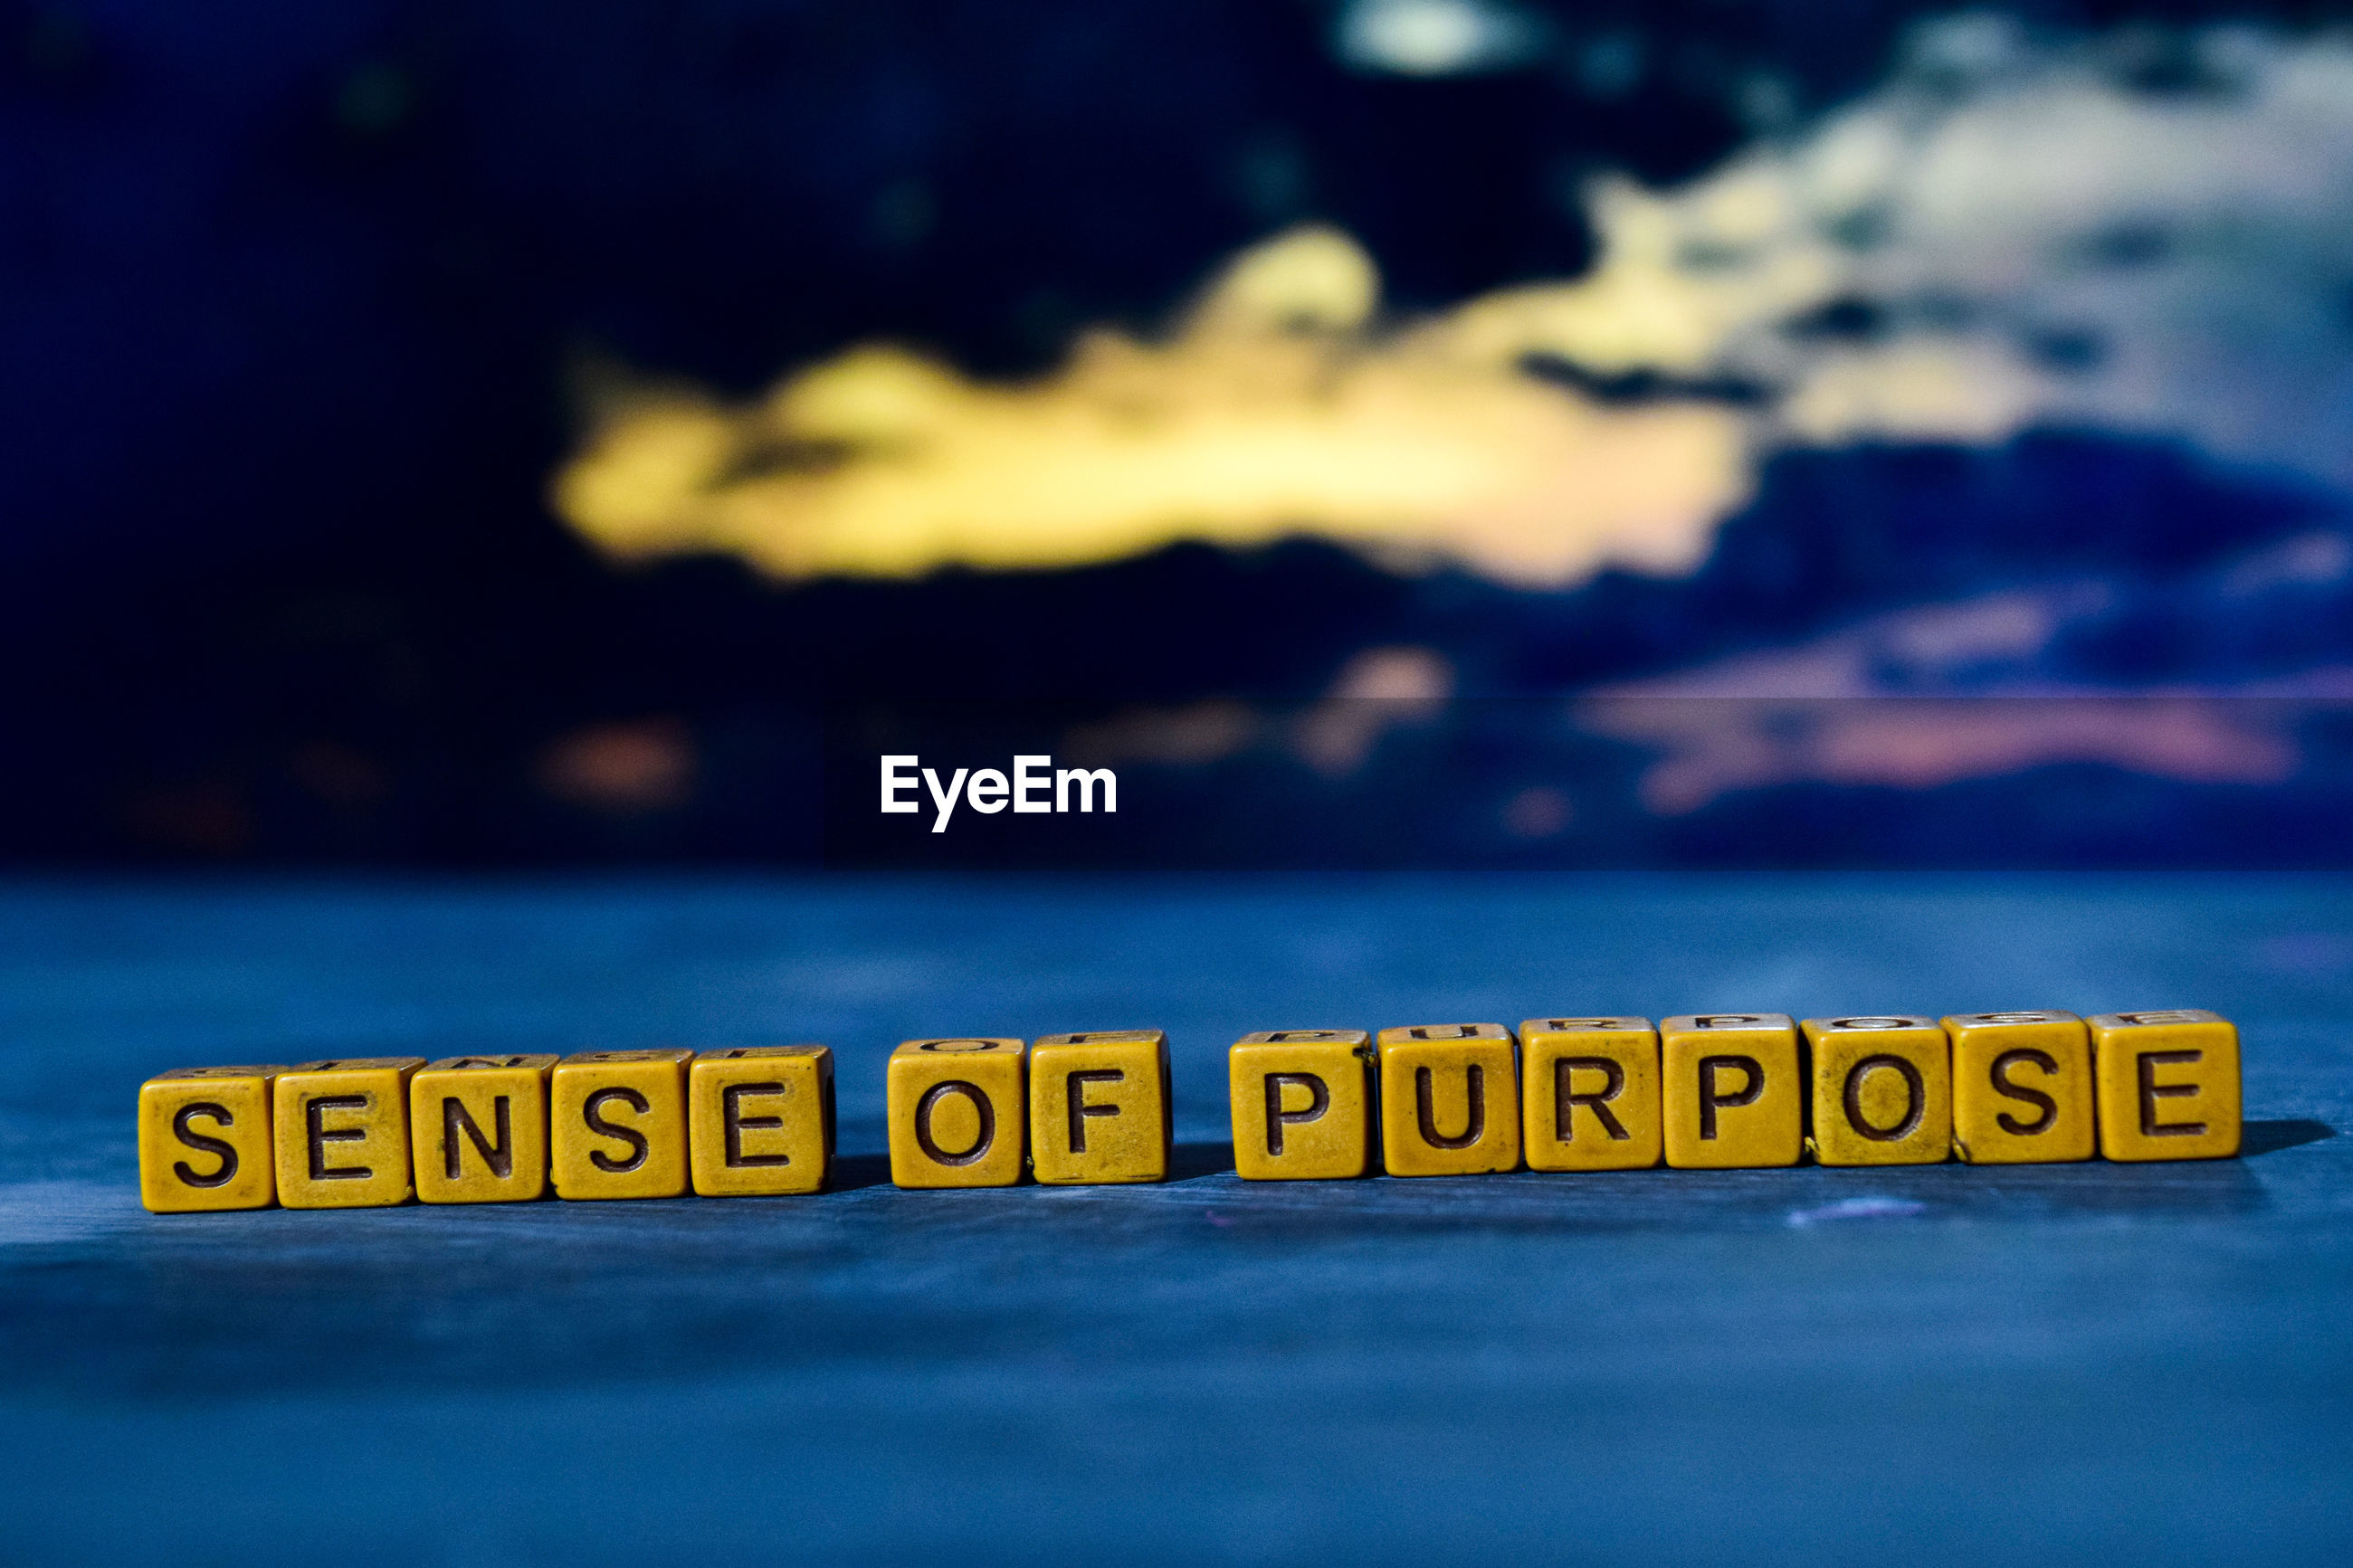 Sense of purpose text on blocks on surface against cloudy sky at dusk